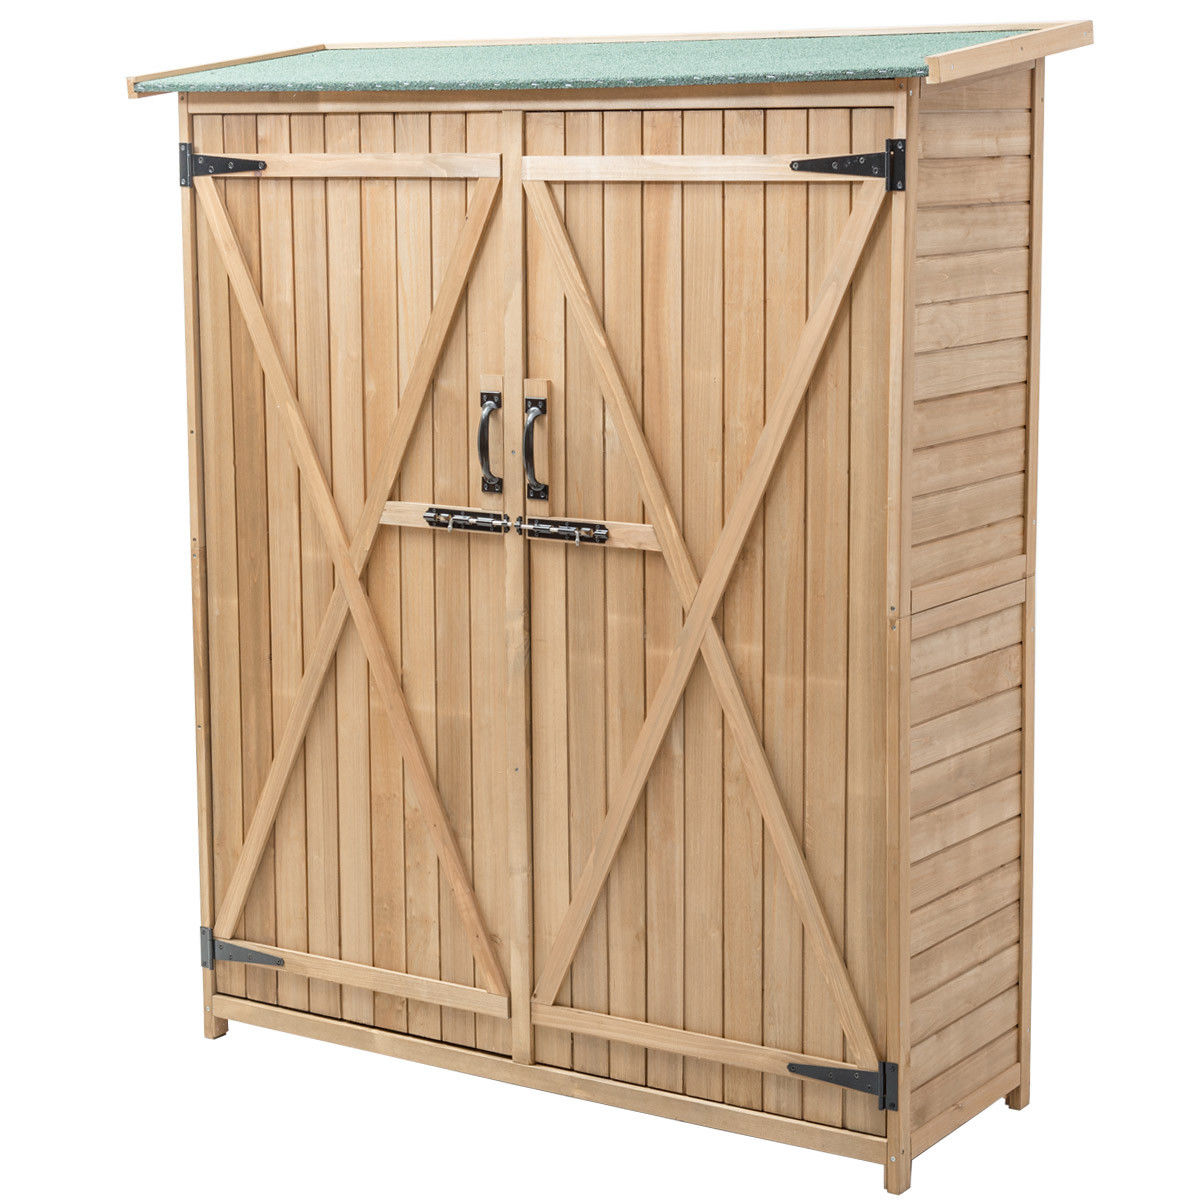 """GHP Home 56""""L×20""""W×64""""H Durable Waterproof Fir Wood Garden Storage Shed Cabinet"""